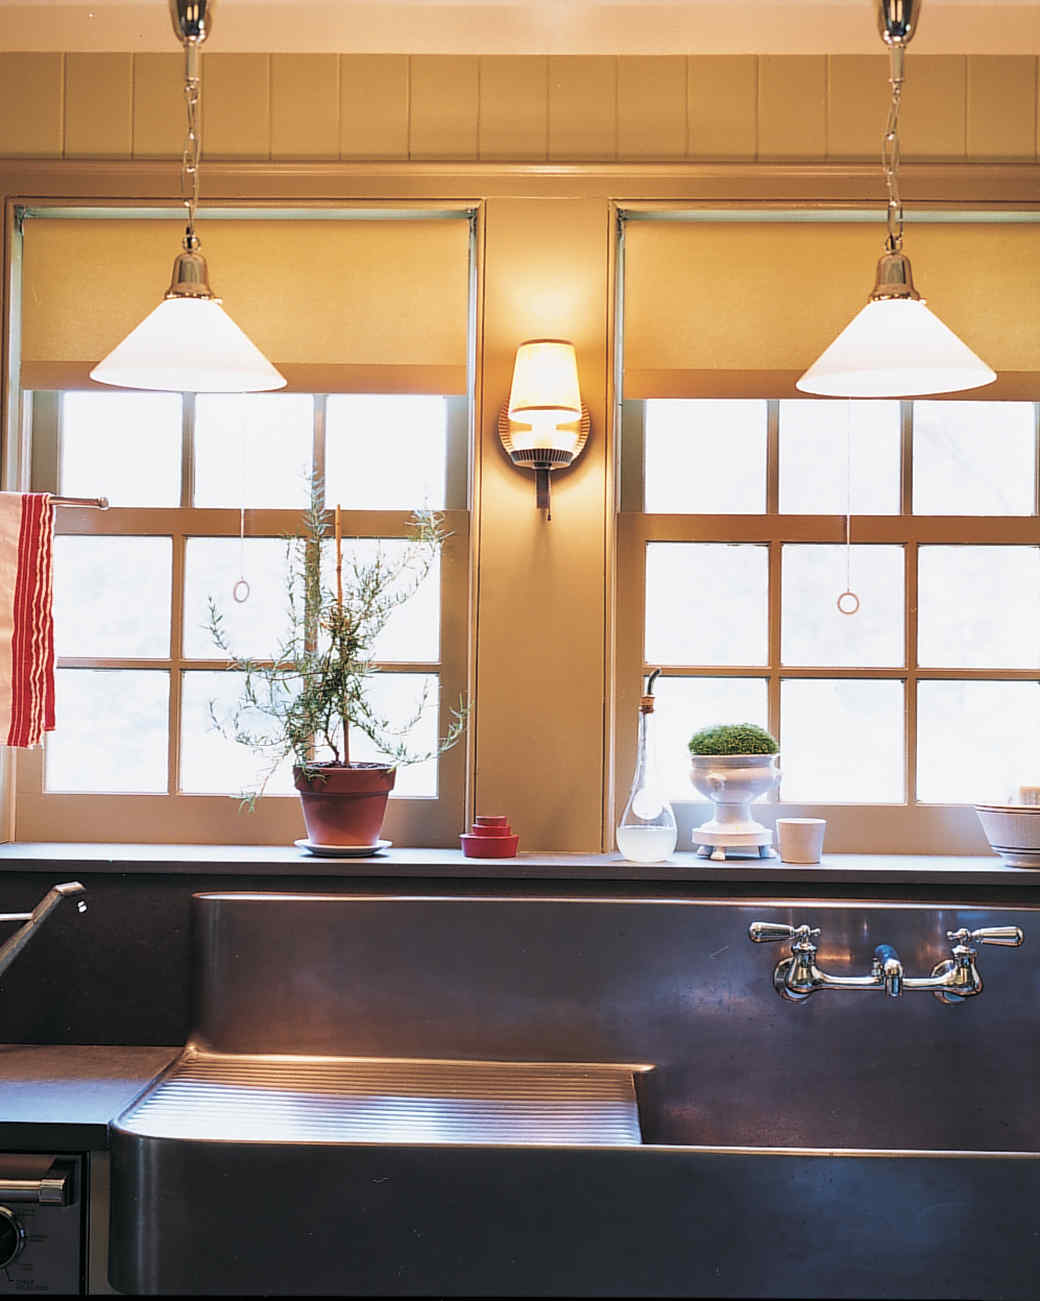 6 Bright Kitchen Lighting Ideas: See How New Fixtures Totally ...